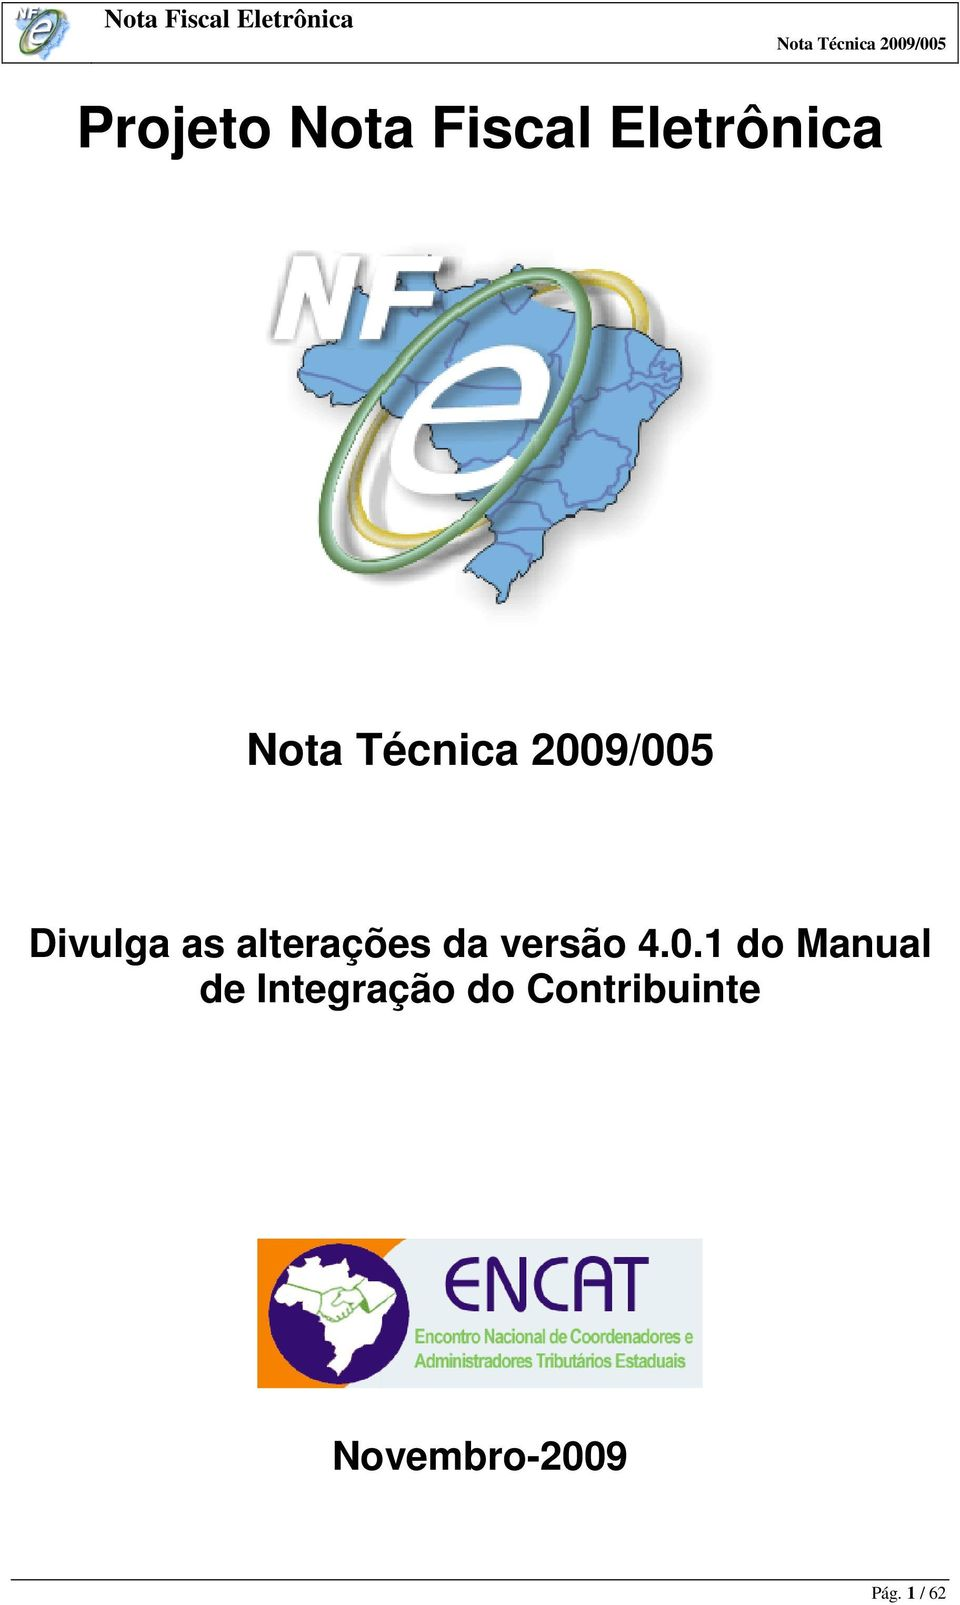 1 do Manual de Integração do Contribuinte